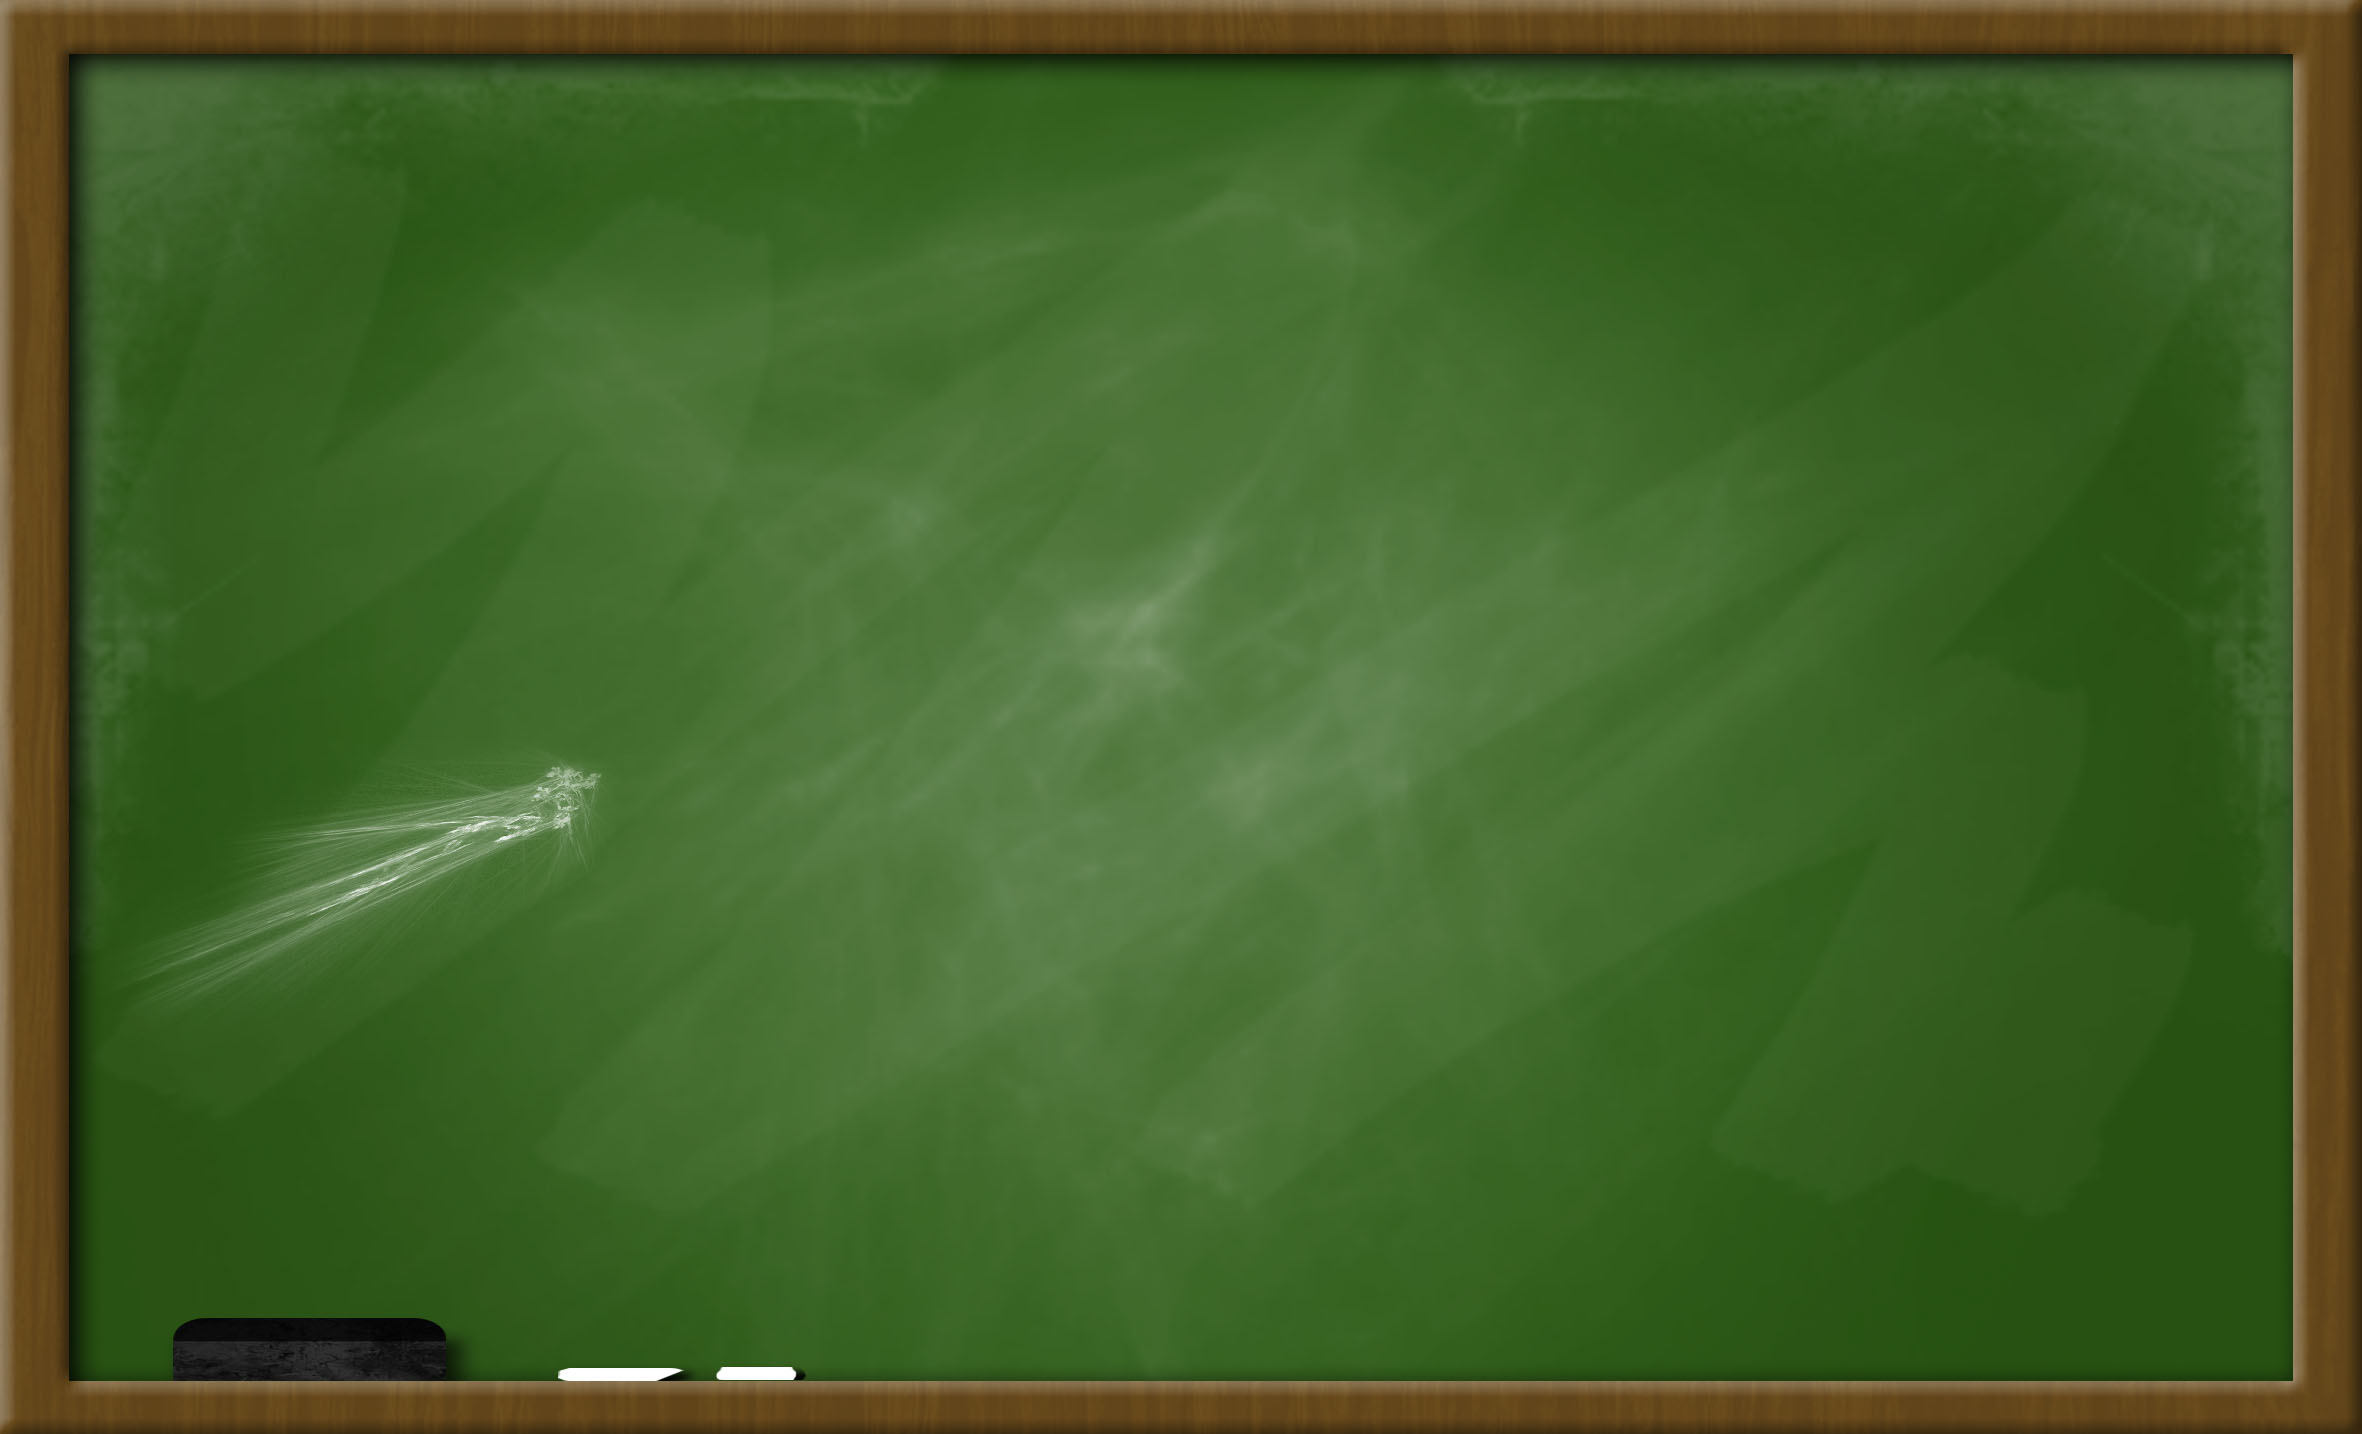 Blackboard Backgrounds For Powerpoint Presentations Pictures 2362x1434